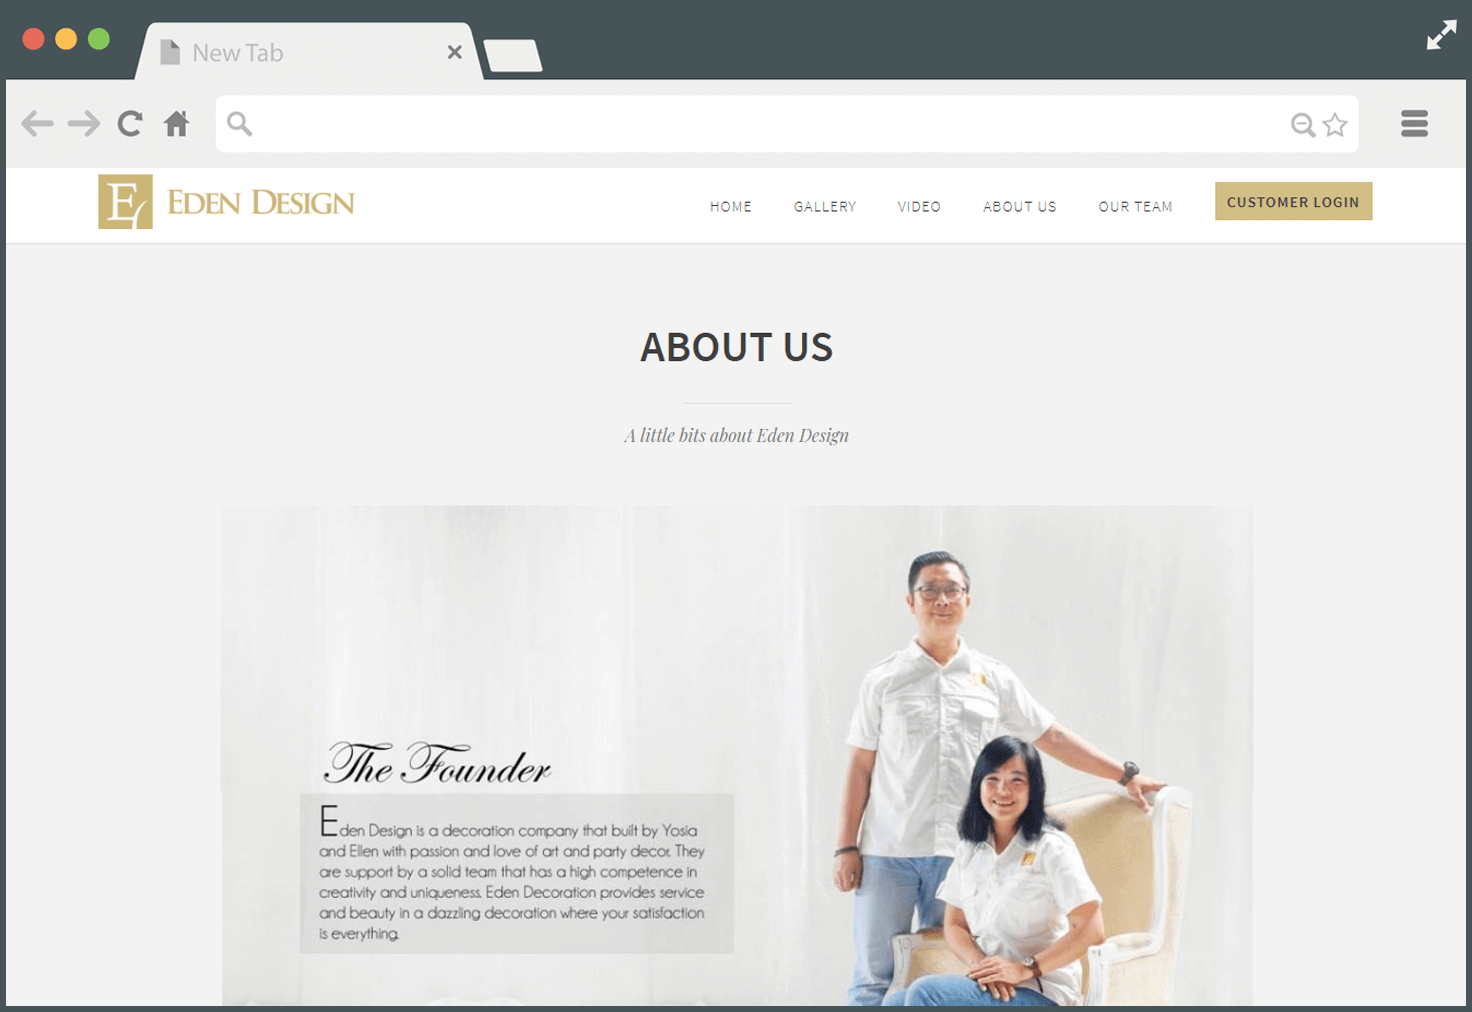 About Us - Company Profile Website